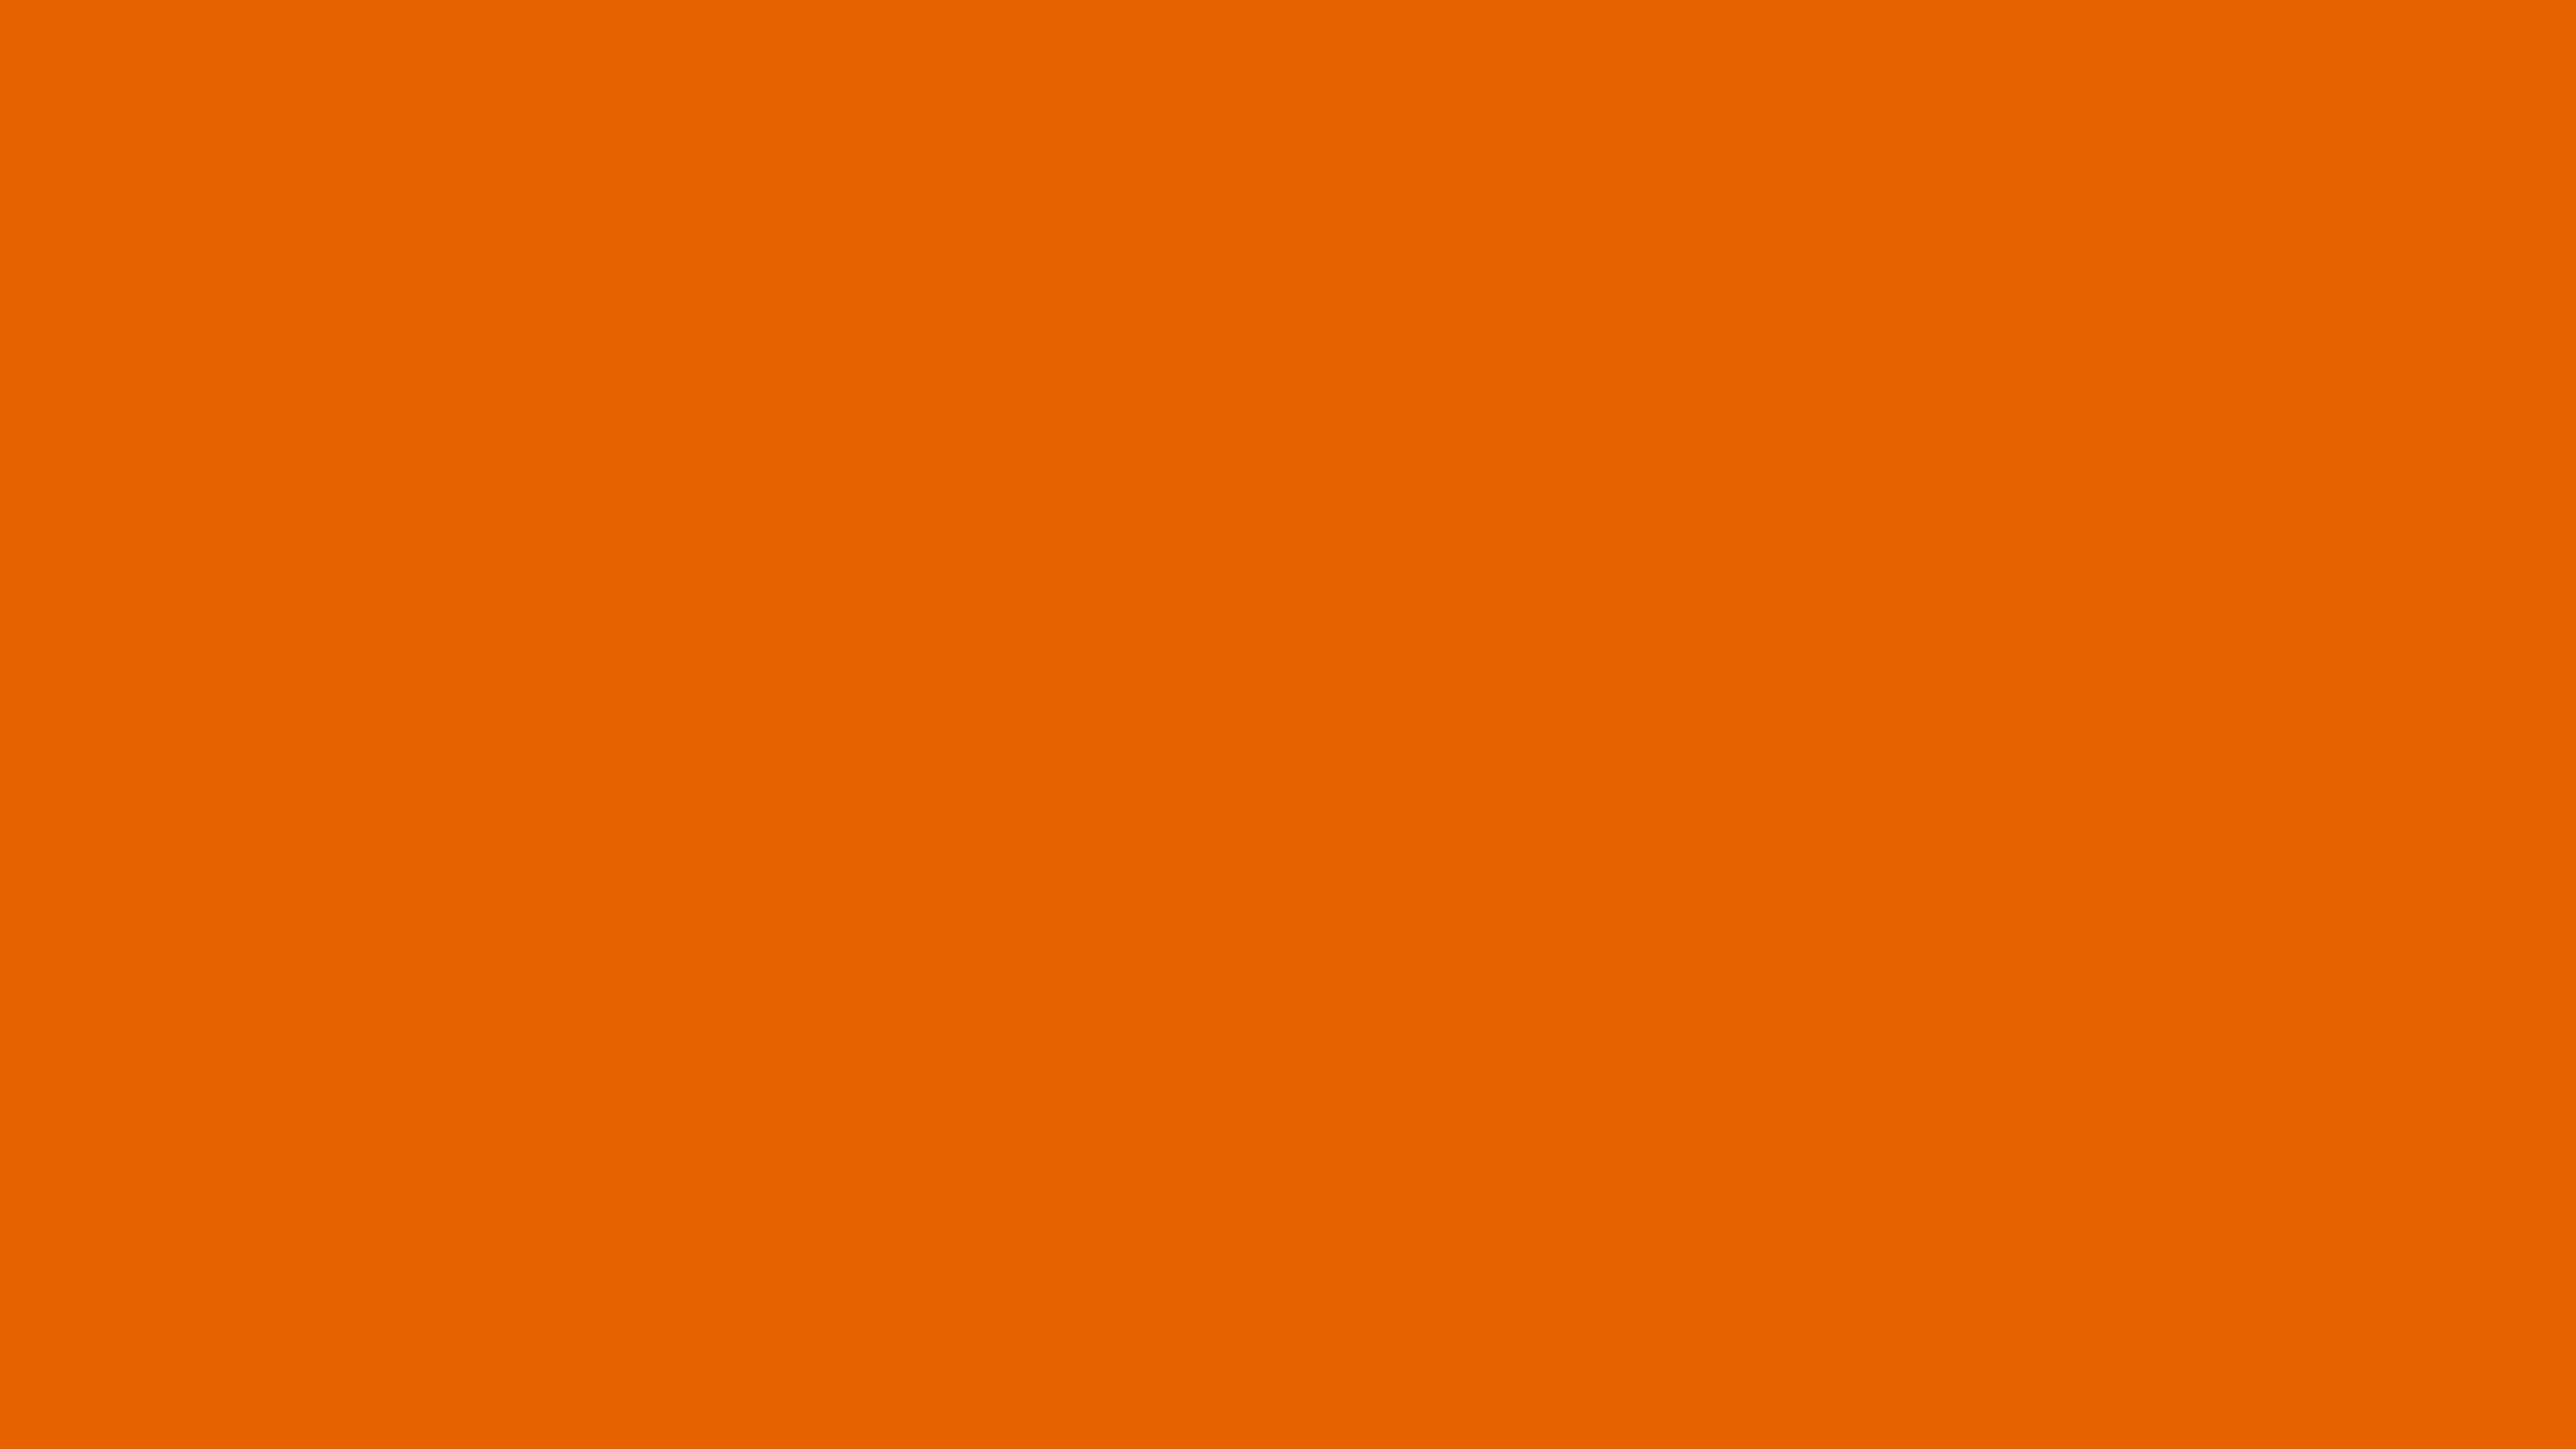 3840x2160 Spanish Orange Solid Color Background